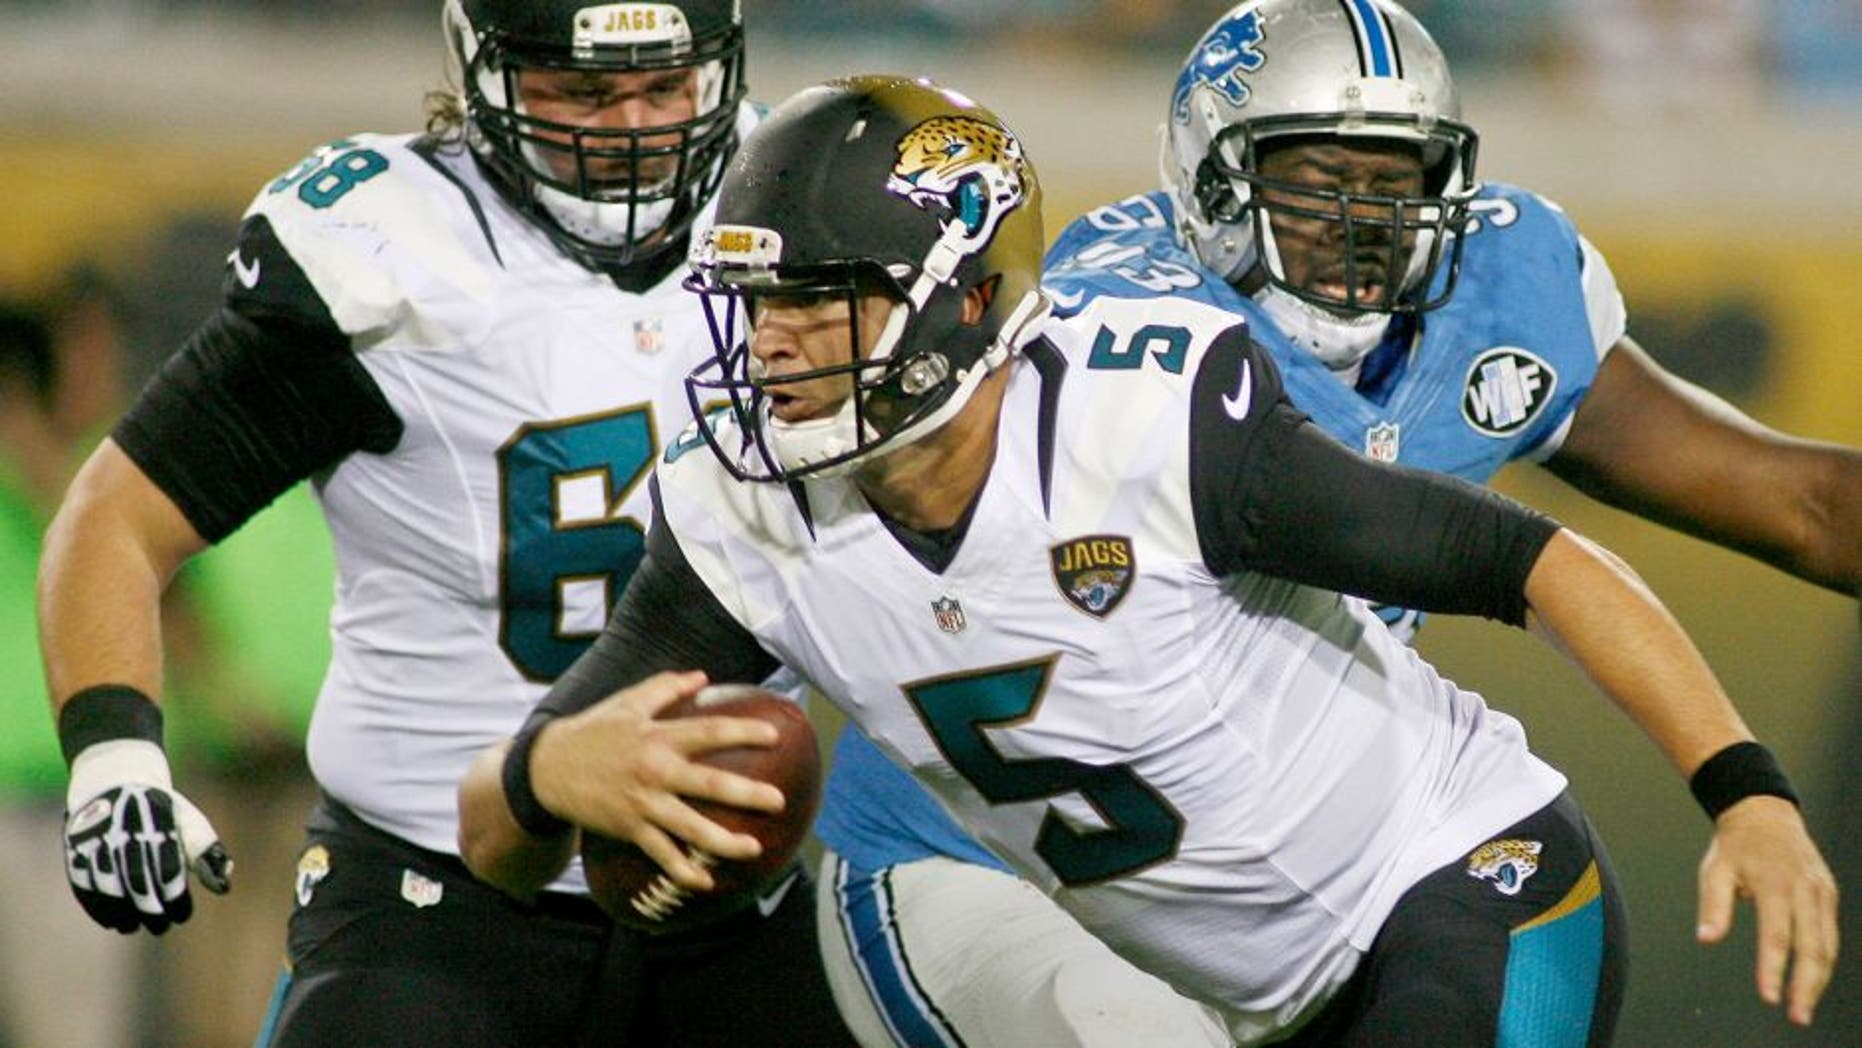 Aug 28, 2015; Jacksonville, FL, USA; Jacksonville Jaguars quarterback Blake Bortles (5) runs away from Detroit Lions defensive tackle Tyrunn Walker (93) in the first quarter of a preseason NFL football game at EverBank Field. Mandatory Credit: Phil Sears-USA TODAY Sports